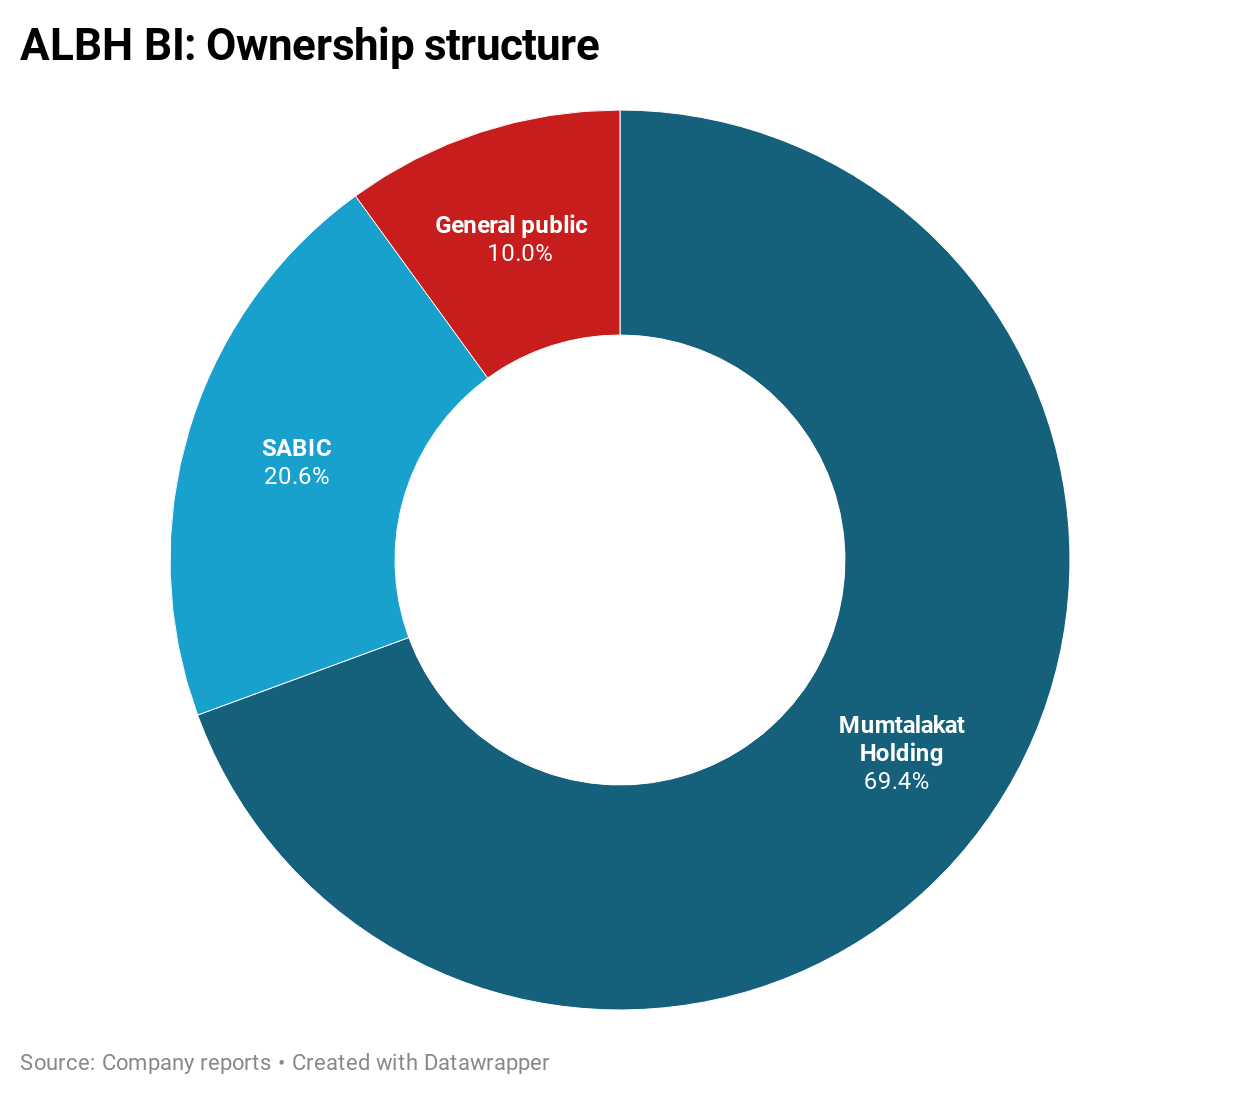 ALBH BI: Ownership structure